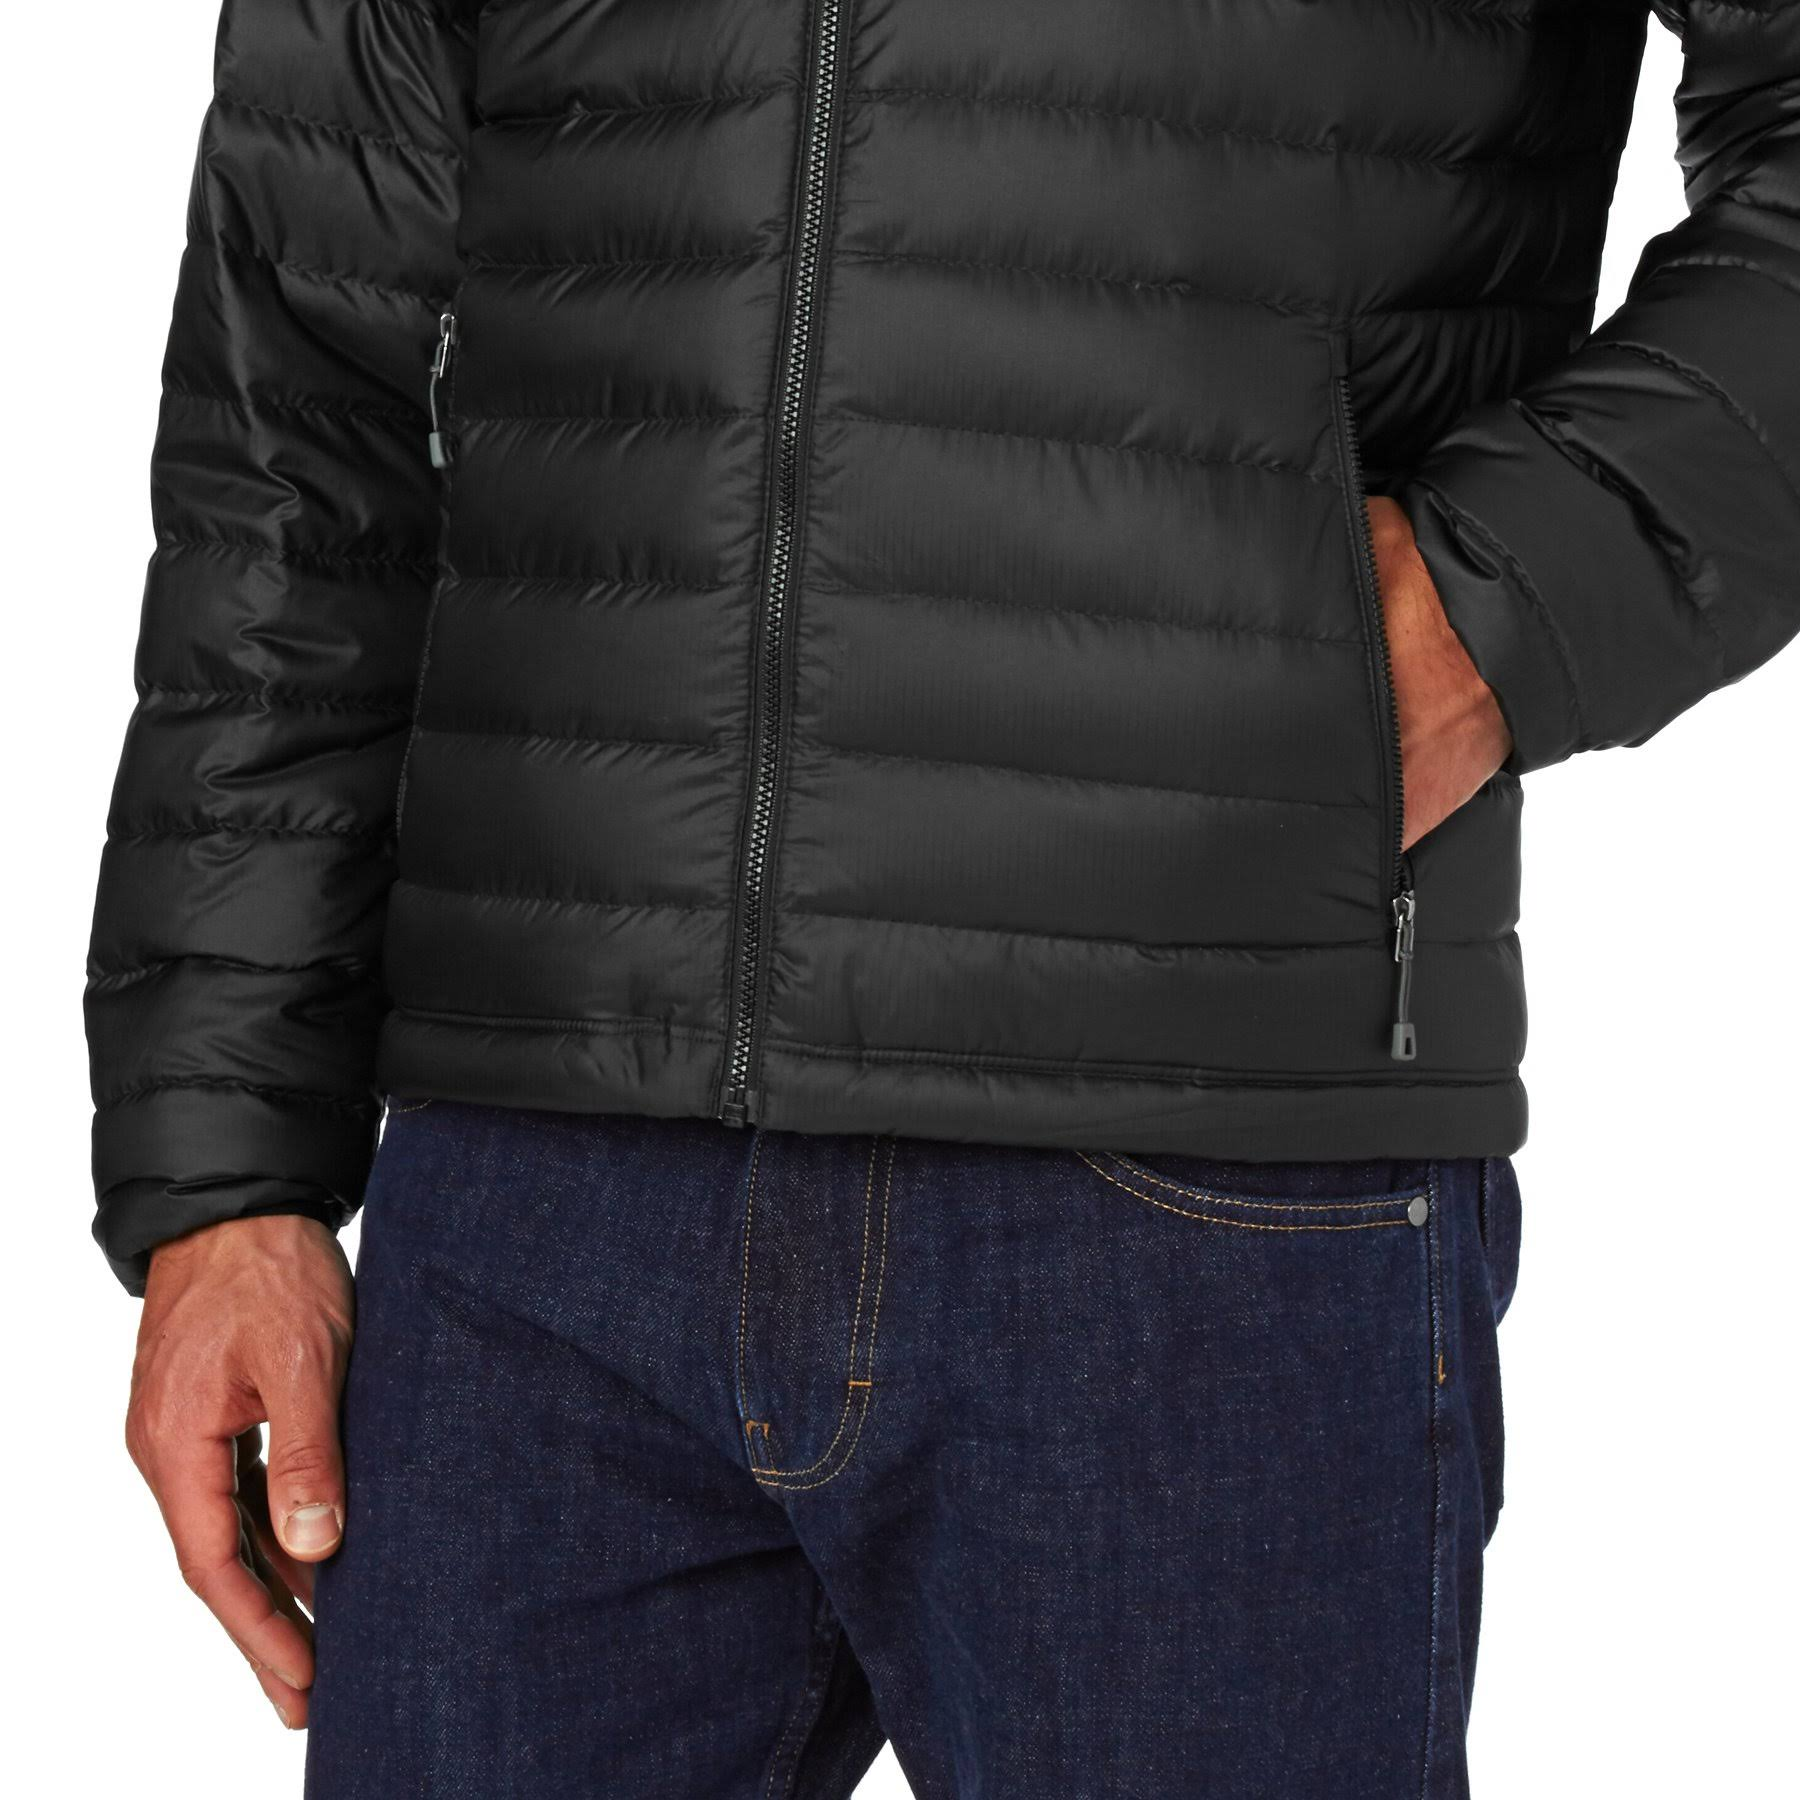 Jacket Down Patagonia S Sweater Black qFafaw7x